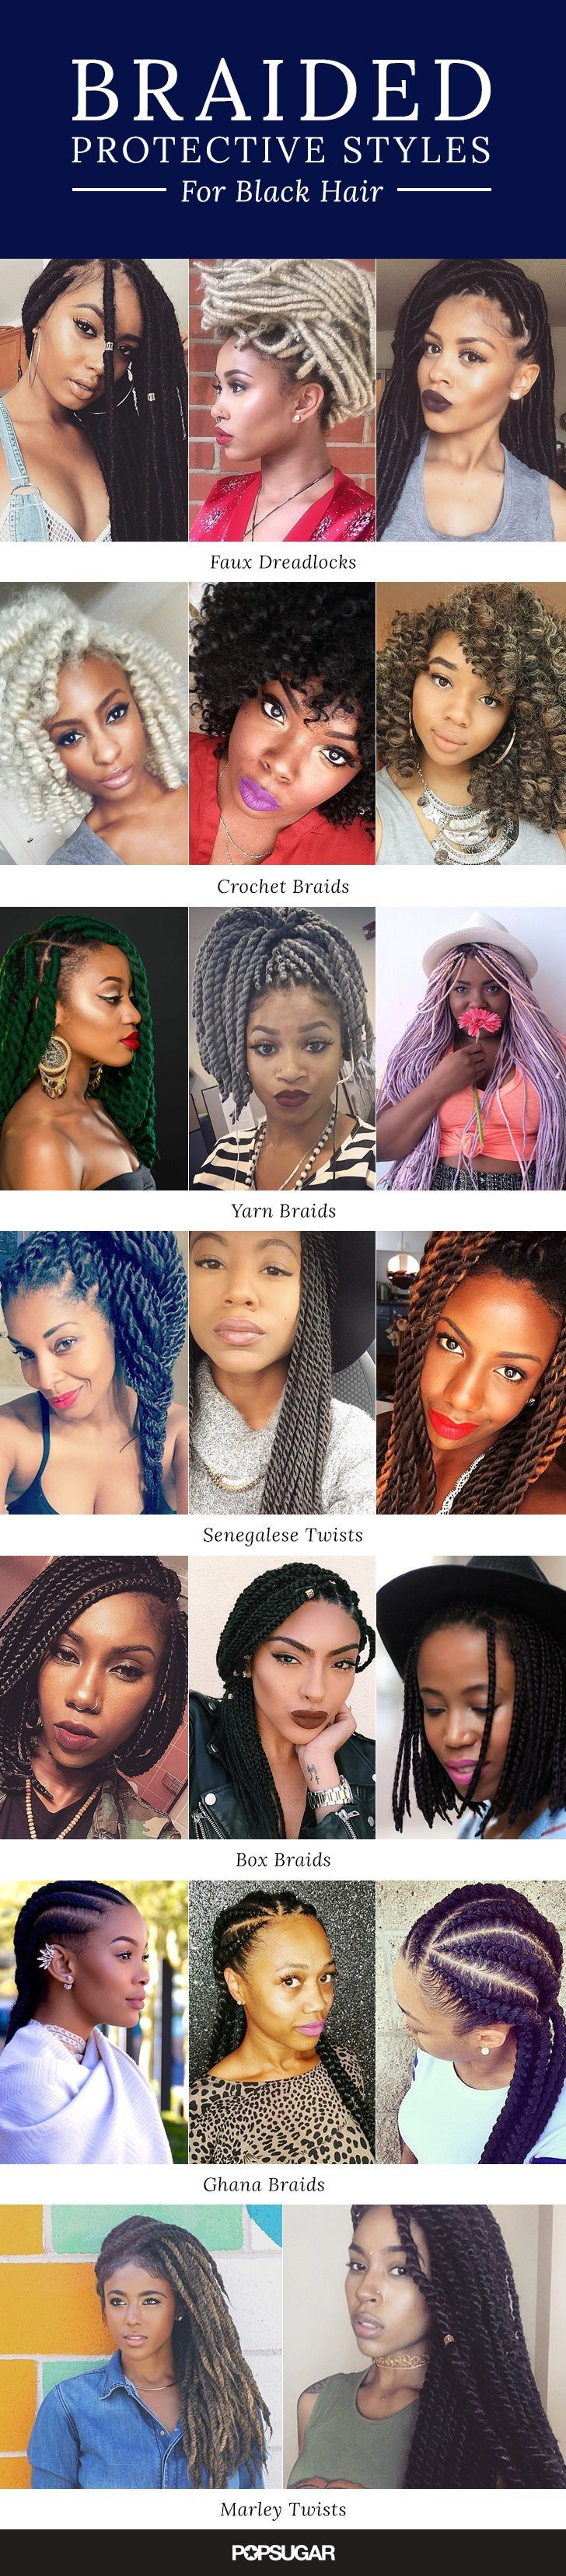 The ultimate guide to braids and protective hairstyles for Summer.